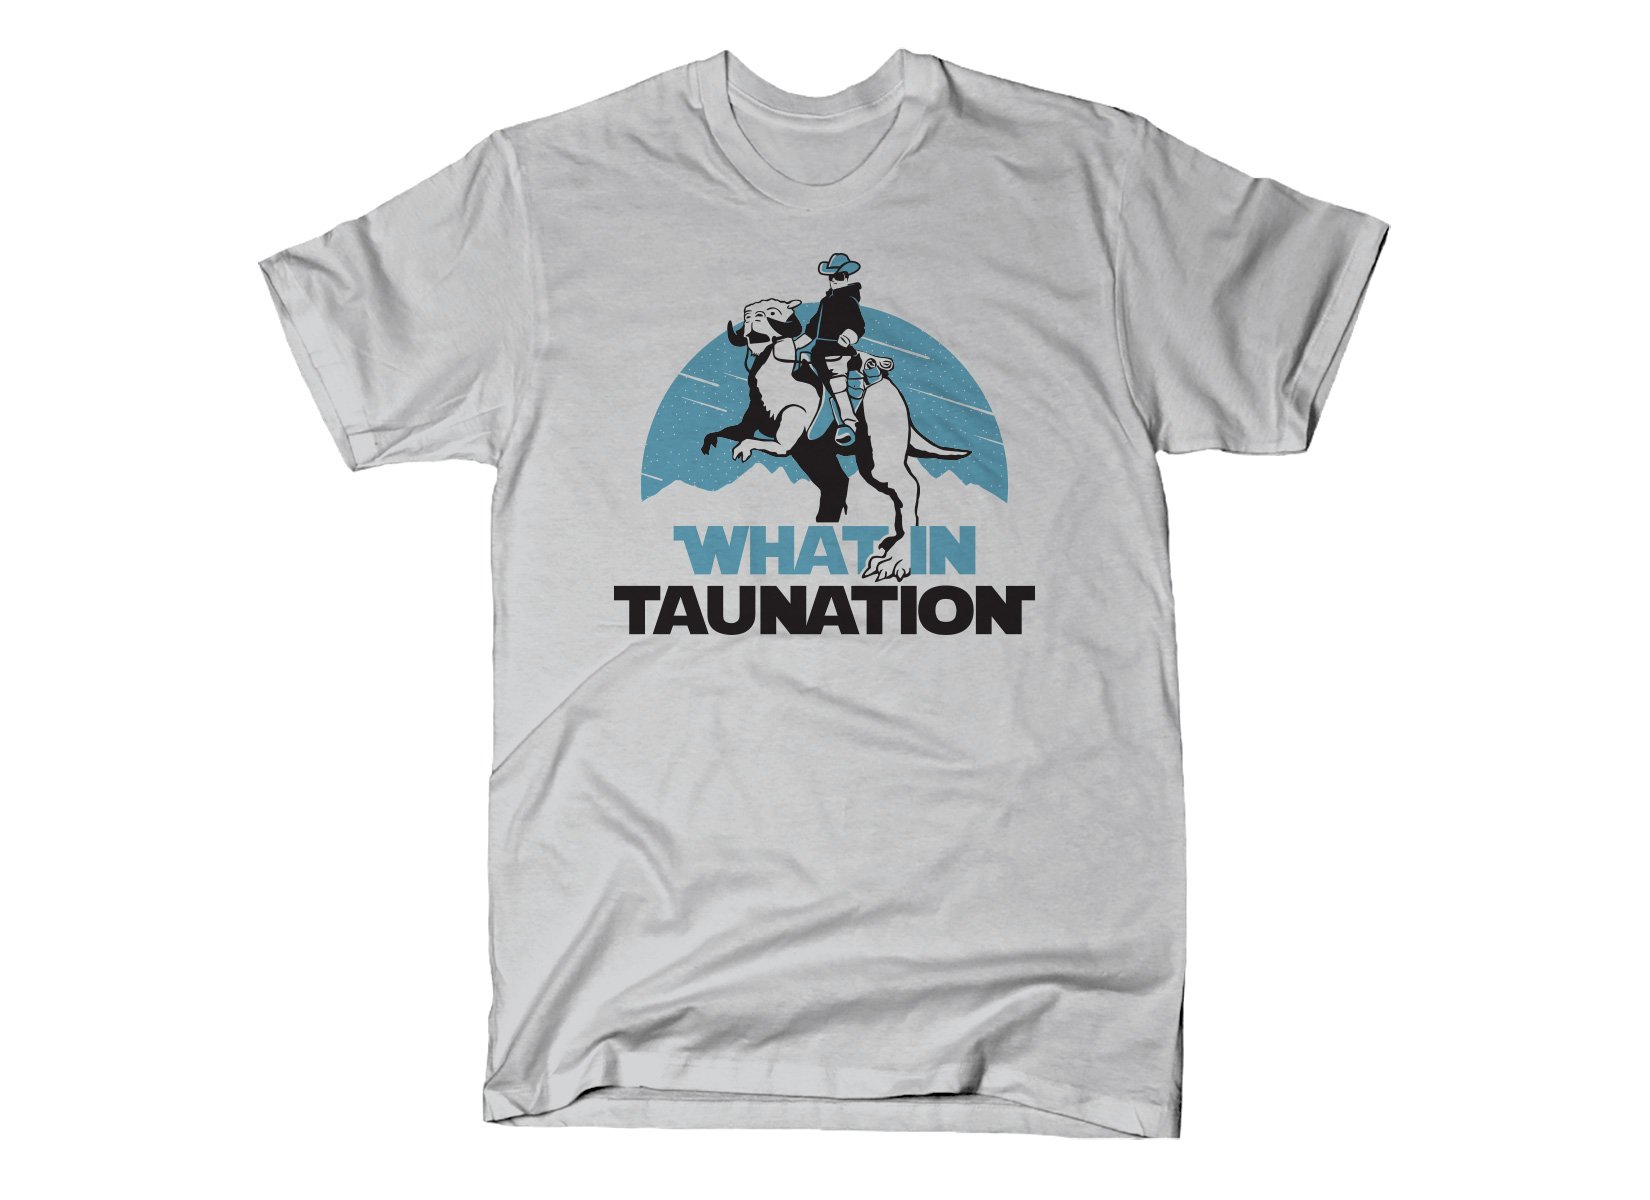 What In Taunation on Mens T-Shirt